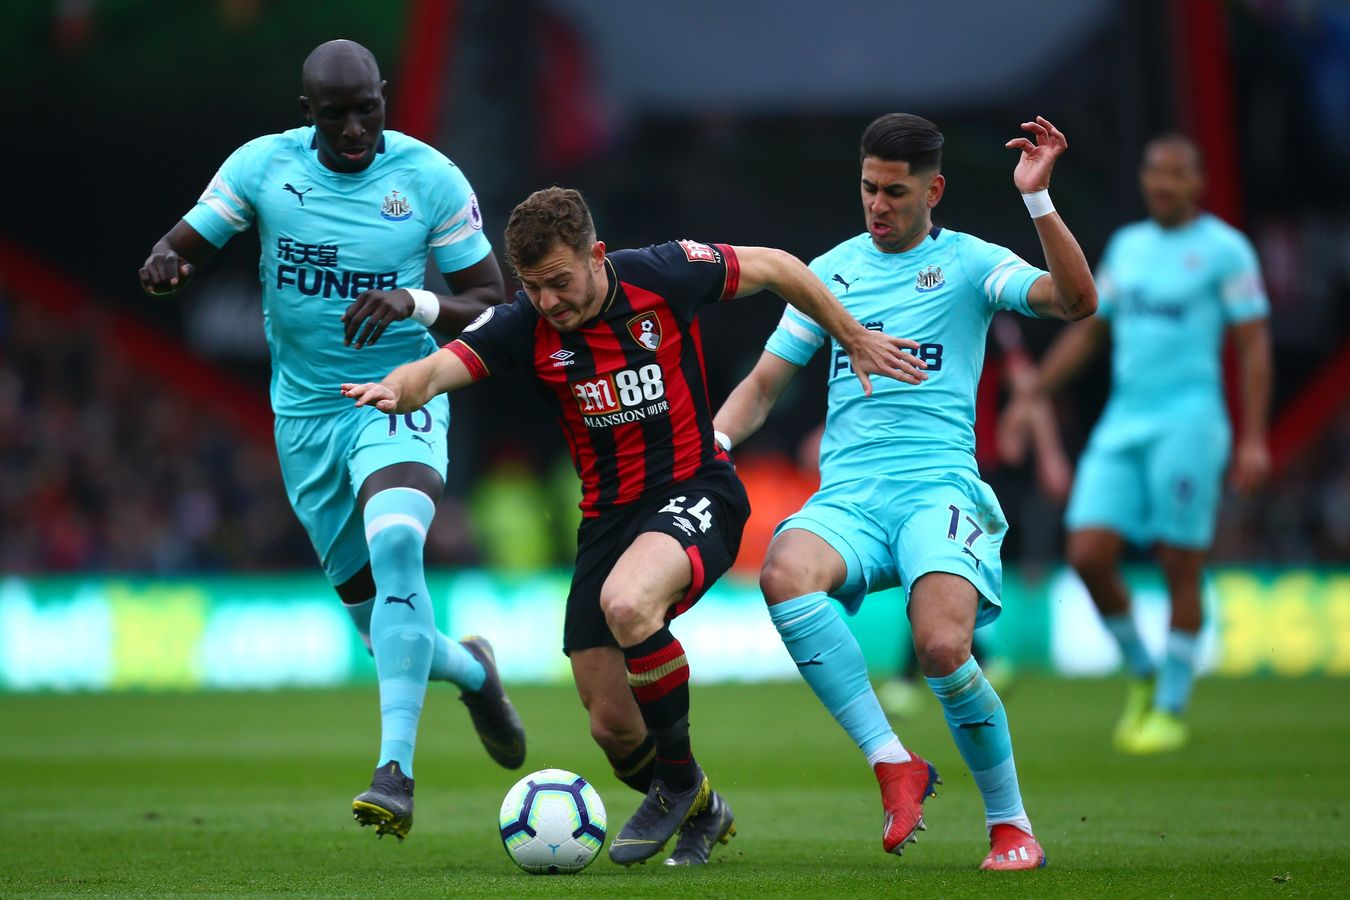 Ryan Fraser, BOUNEW action